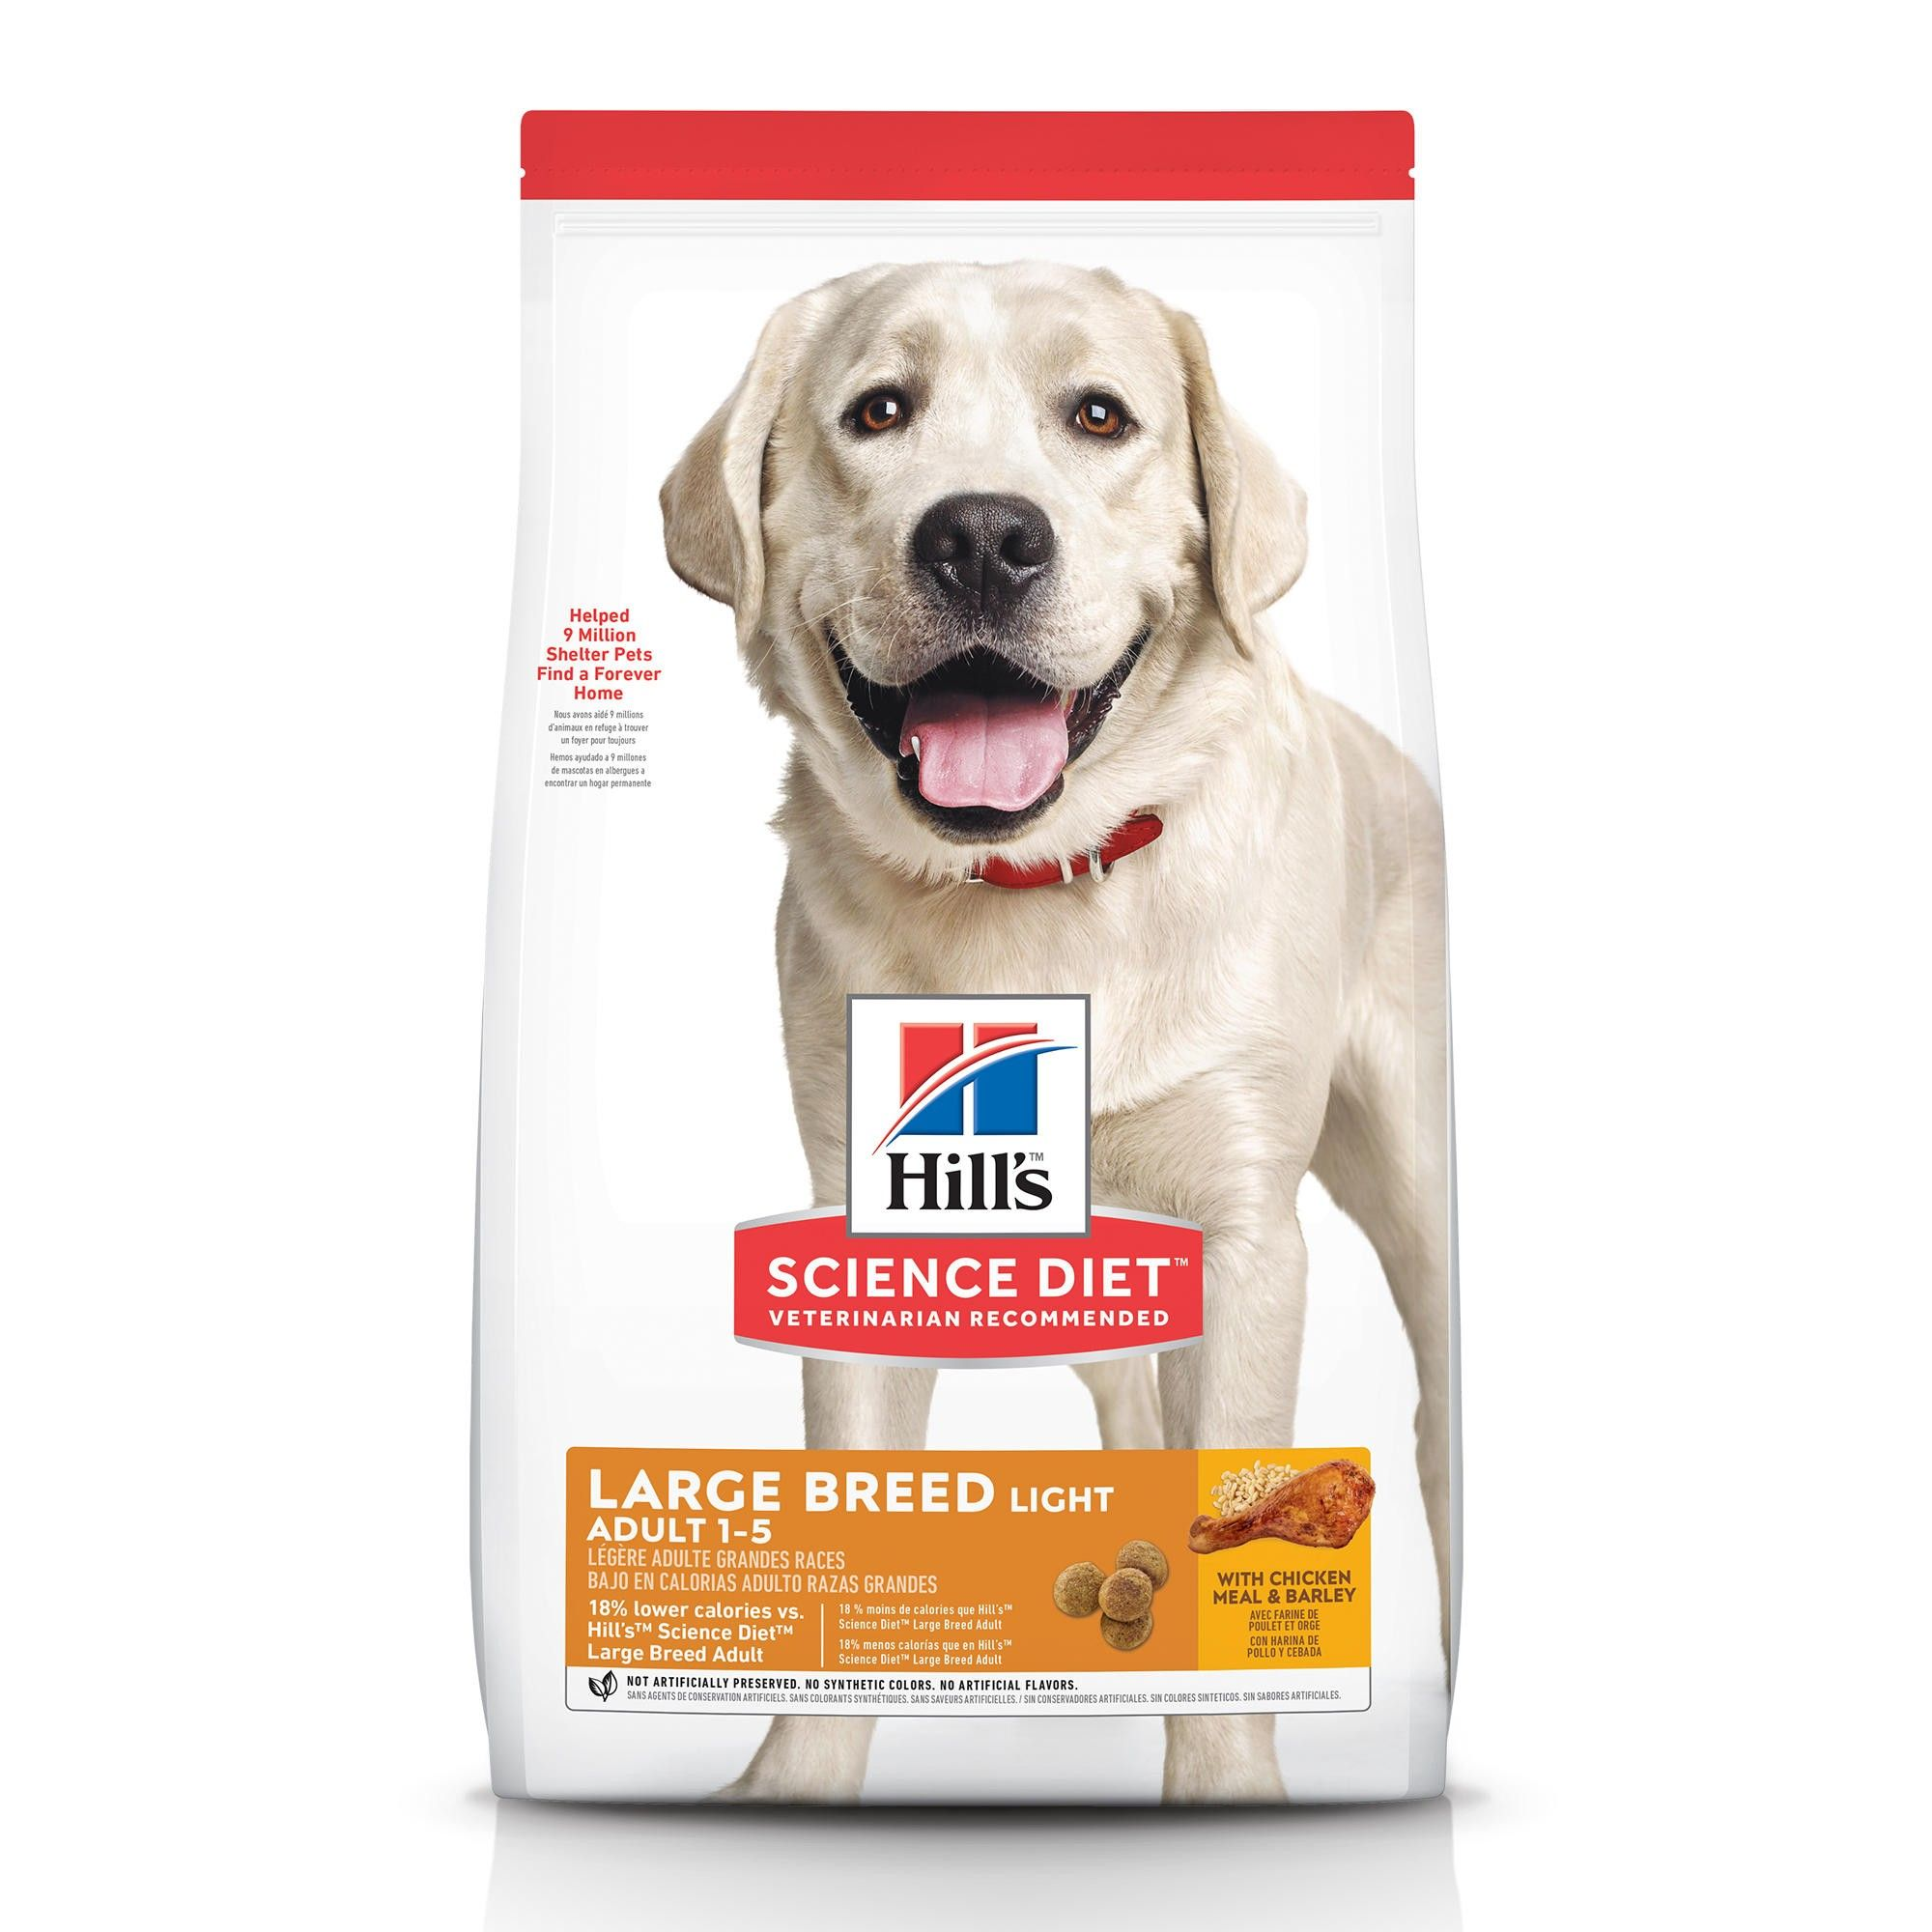 Hill's Science Diet Adult Light Dry Dog Food Image